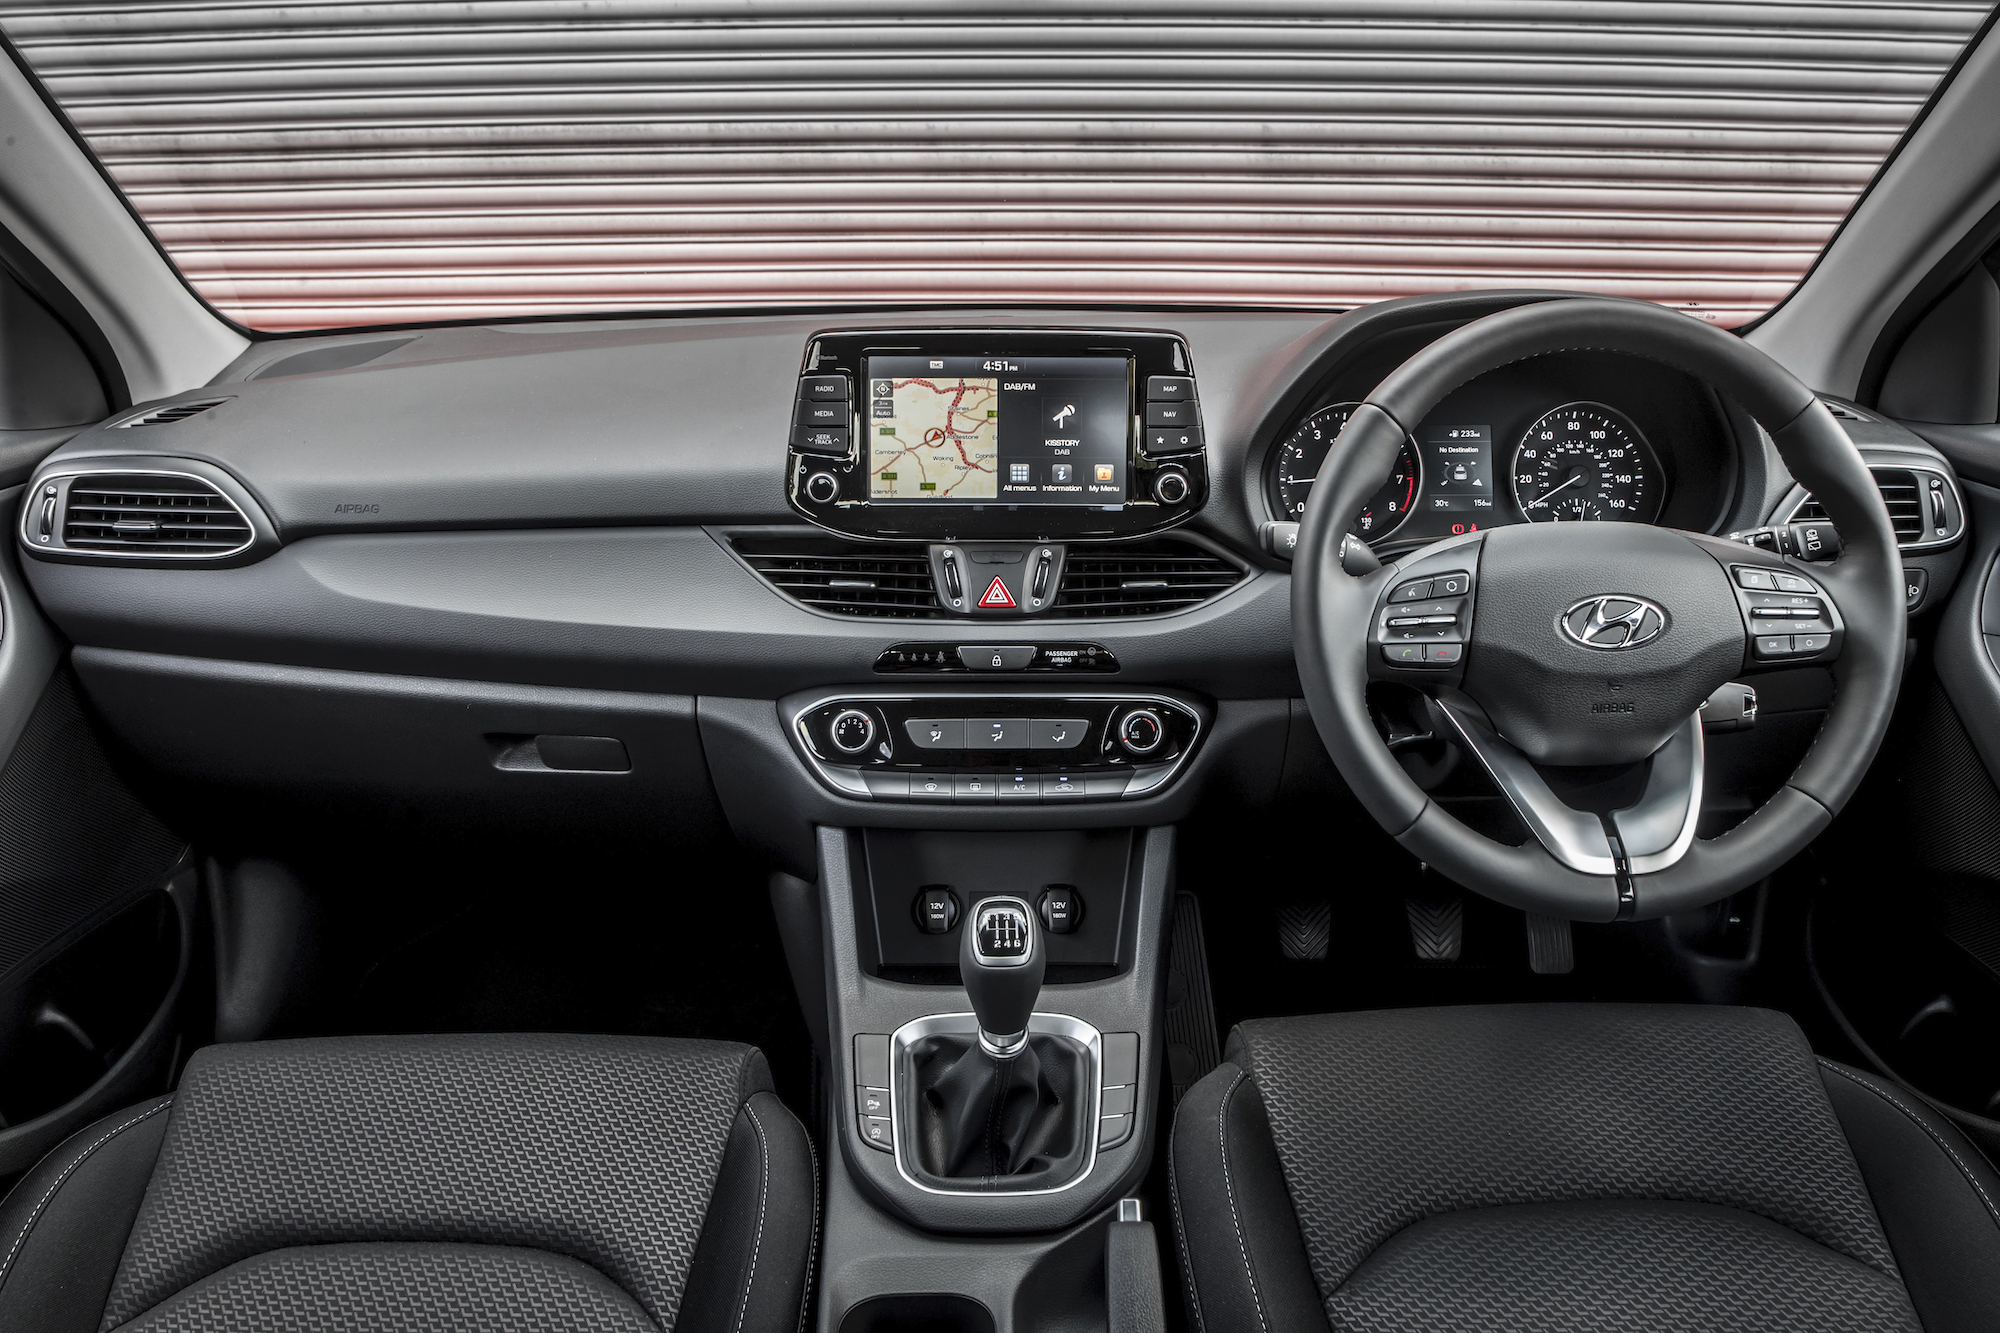 The i30's cabin is solidly made with several soft-touch materials